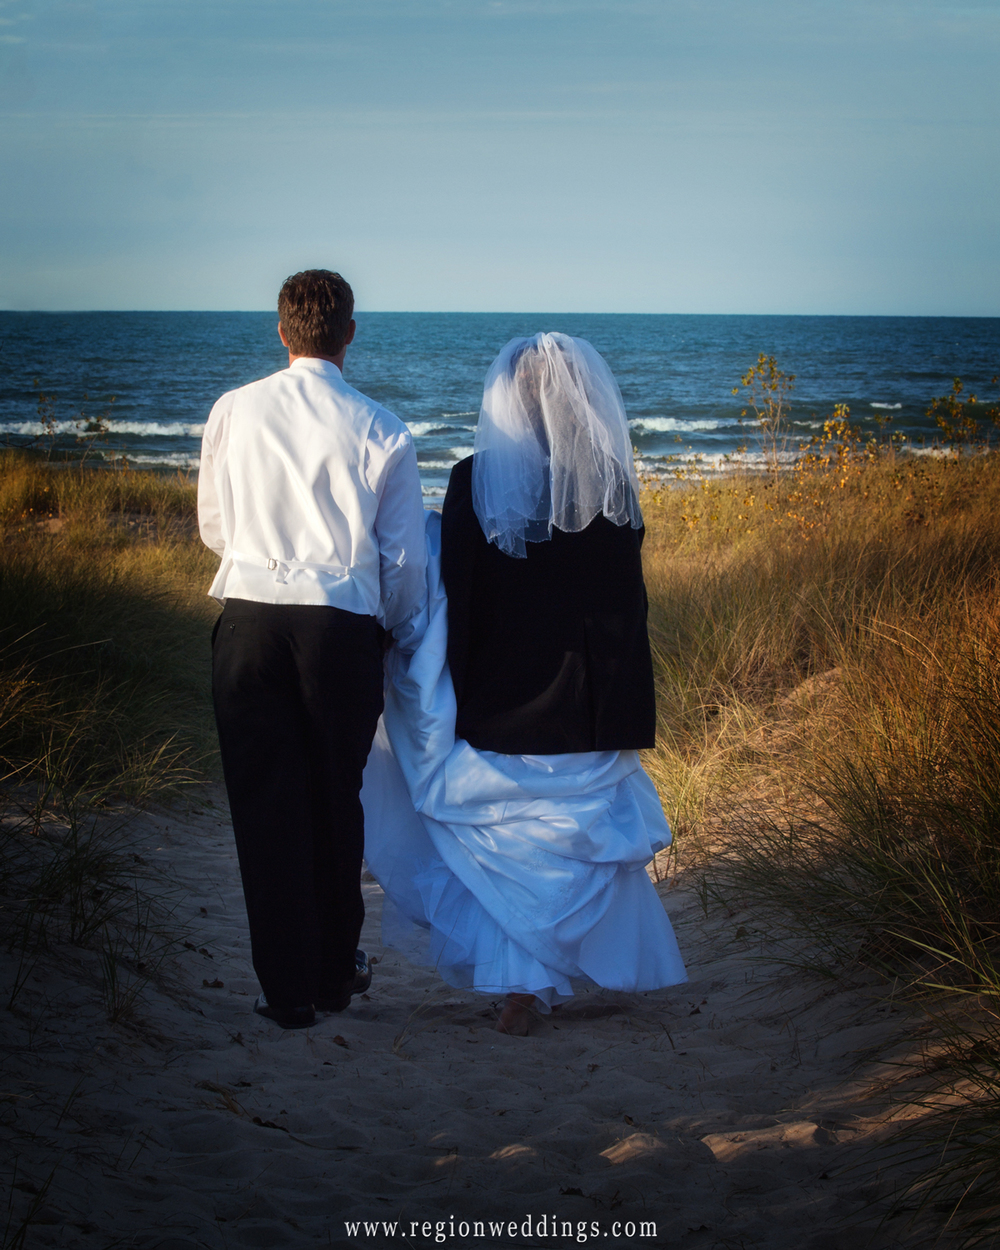 Bride and groom walk toward the beach after their wedding at the Indiana Dunes Lakeshore.